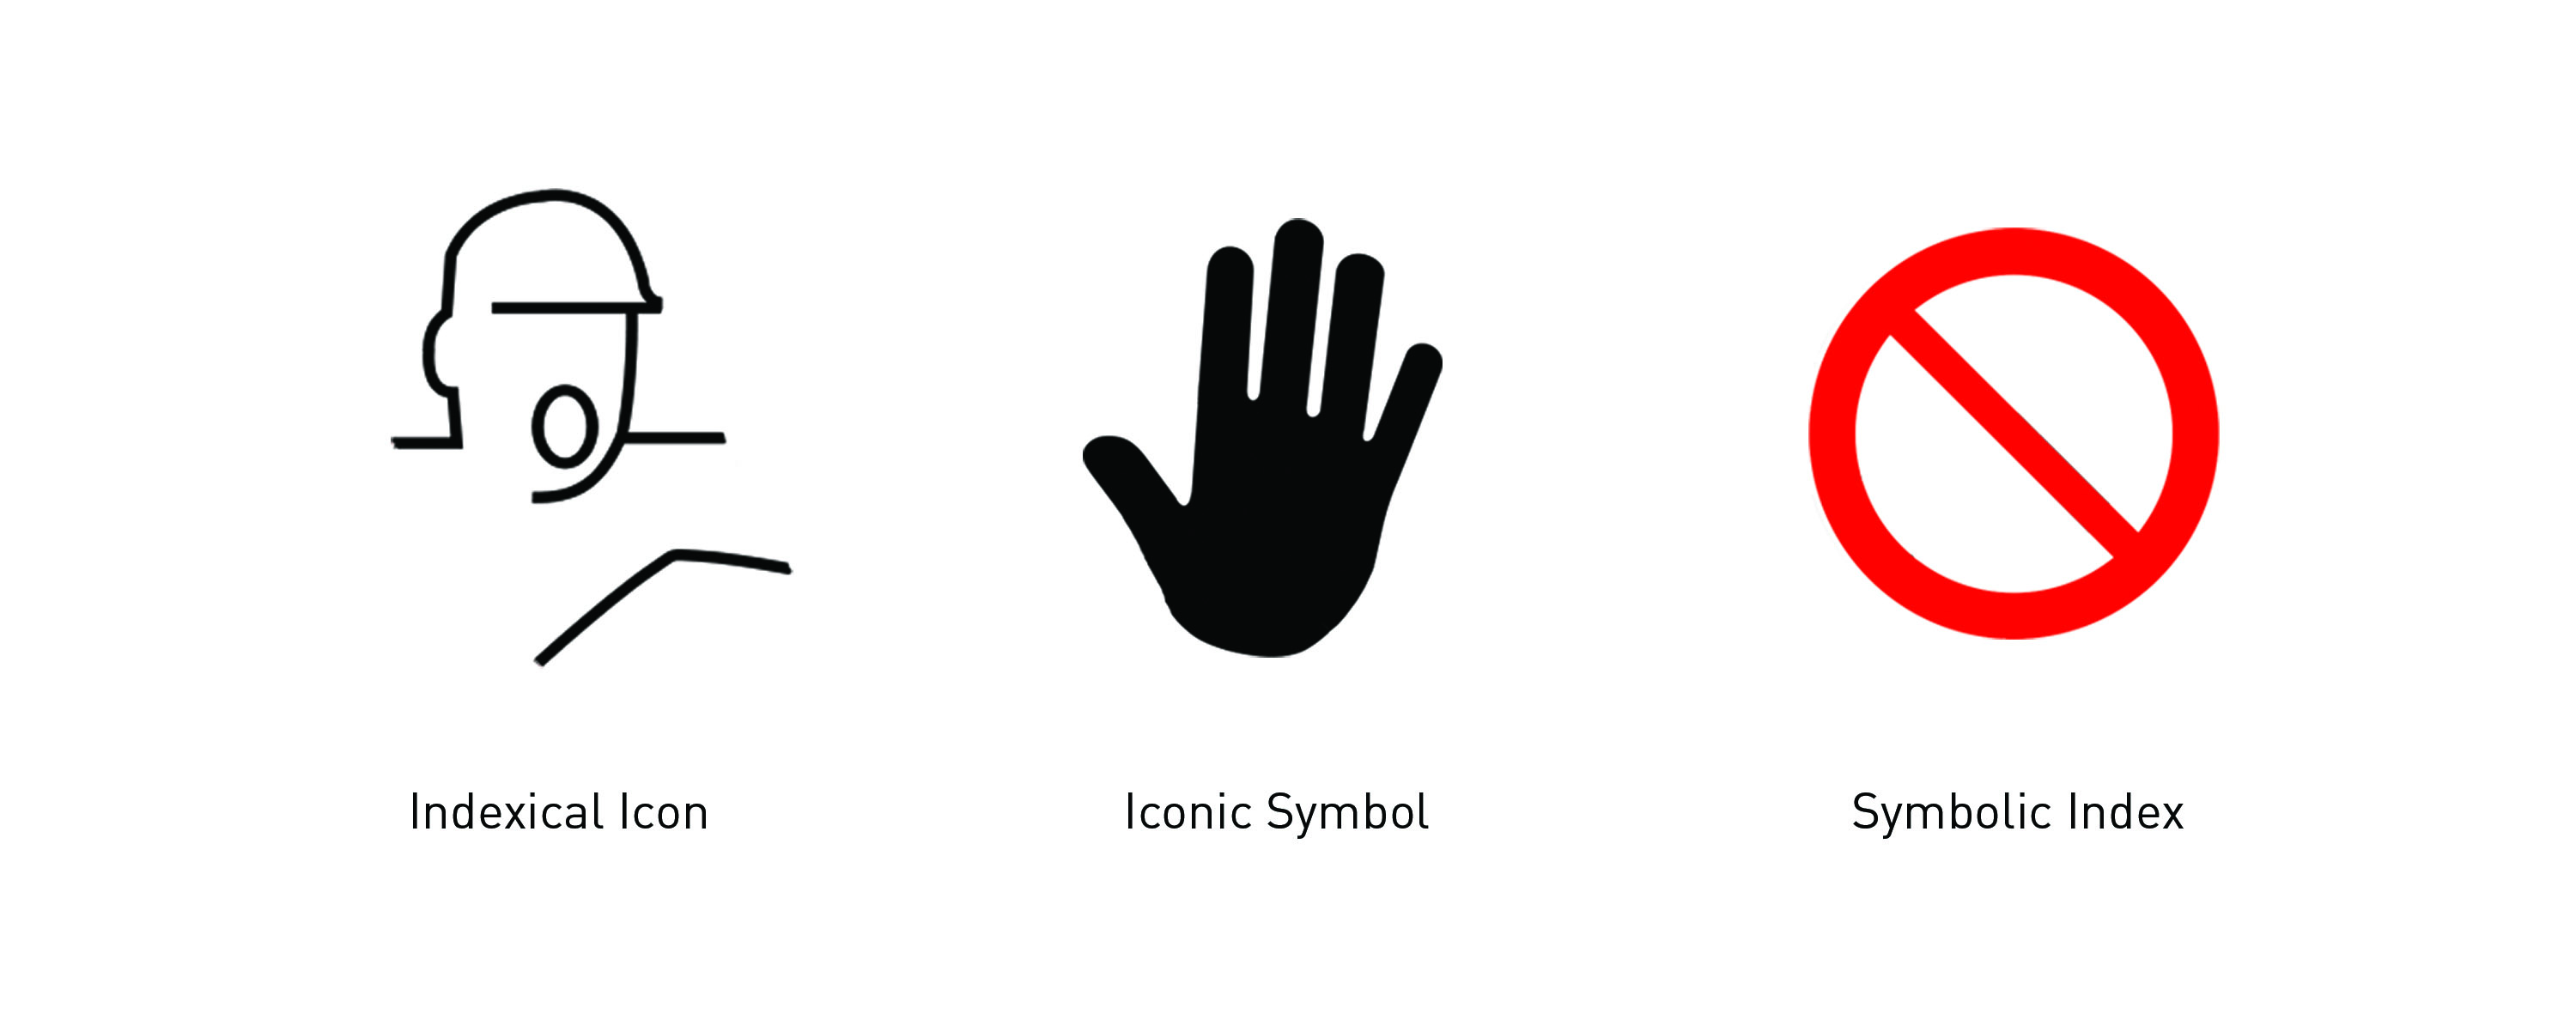 Tip Of The Icon Examining Socially Symbolic Indexical Signage